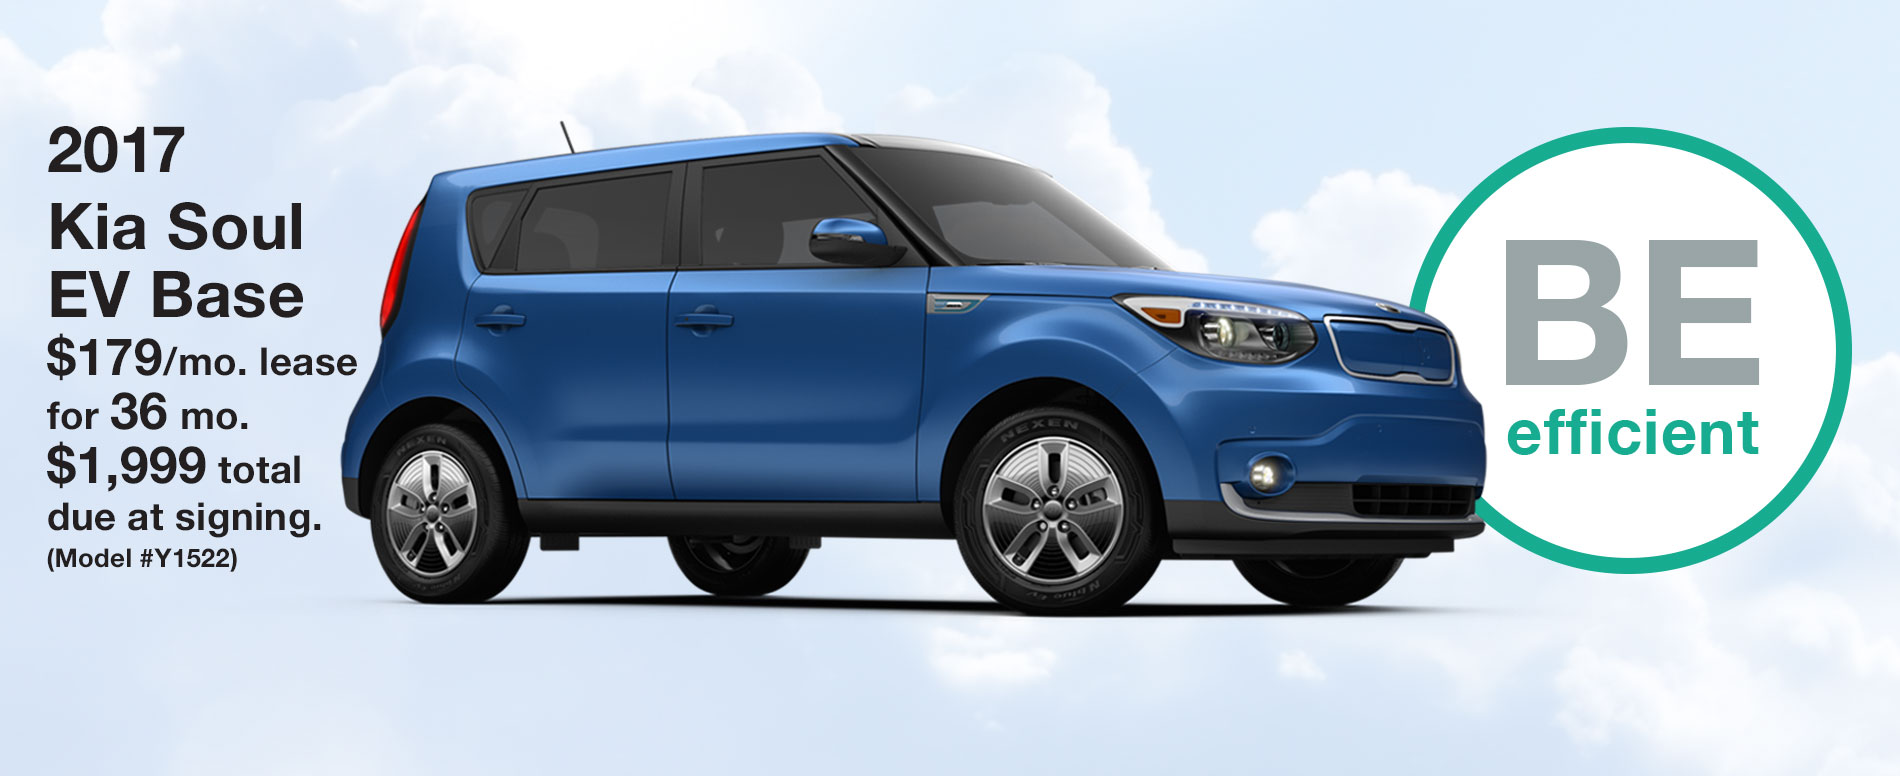 2017 Kia Soul EV Base Lease $179 per month for 36 months with $1,999 due at signing